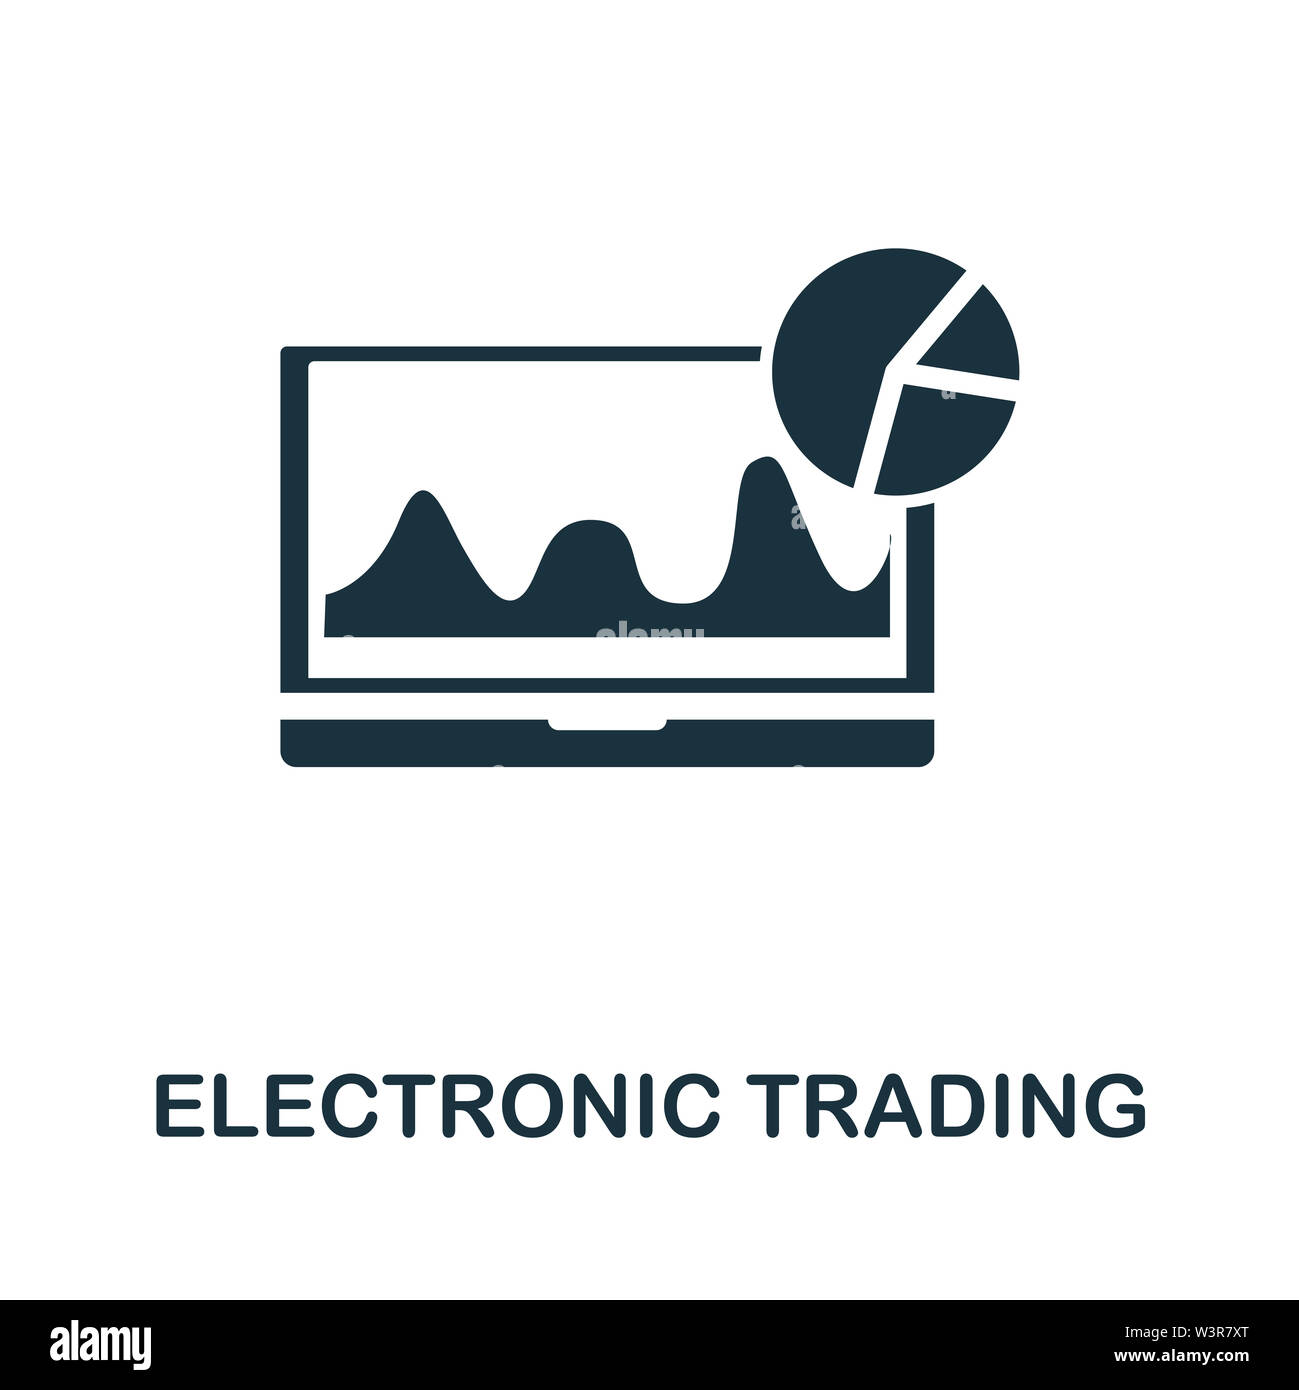 Electronic Trading icon illustration. Creative sign from investment icons collection. Filled flat Electronic Trading icon for computer and mobile. Sym Stock Photo